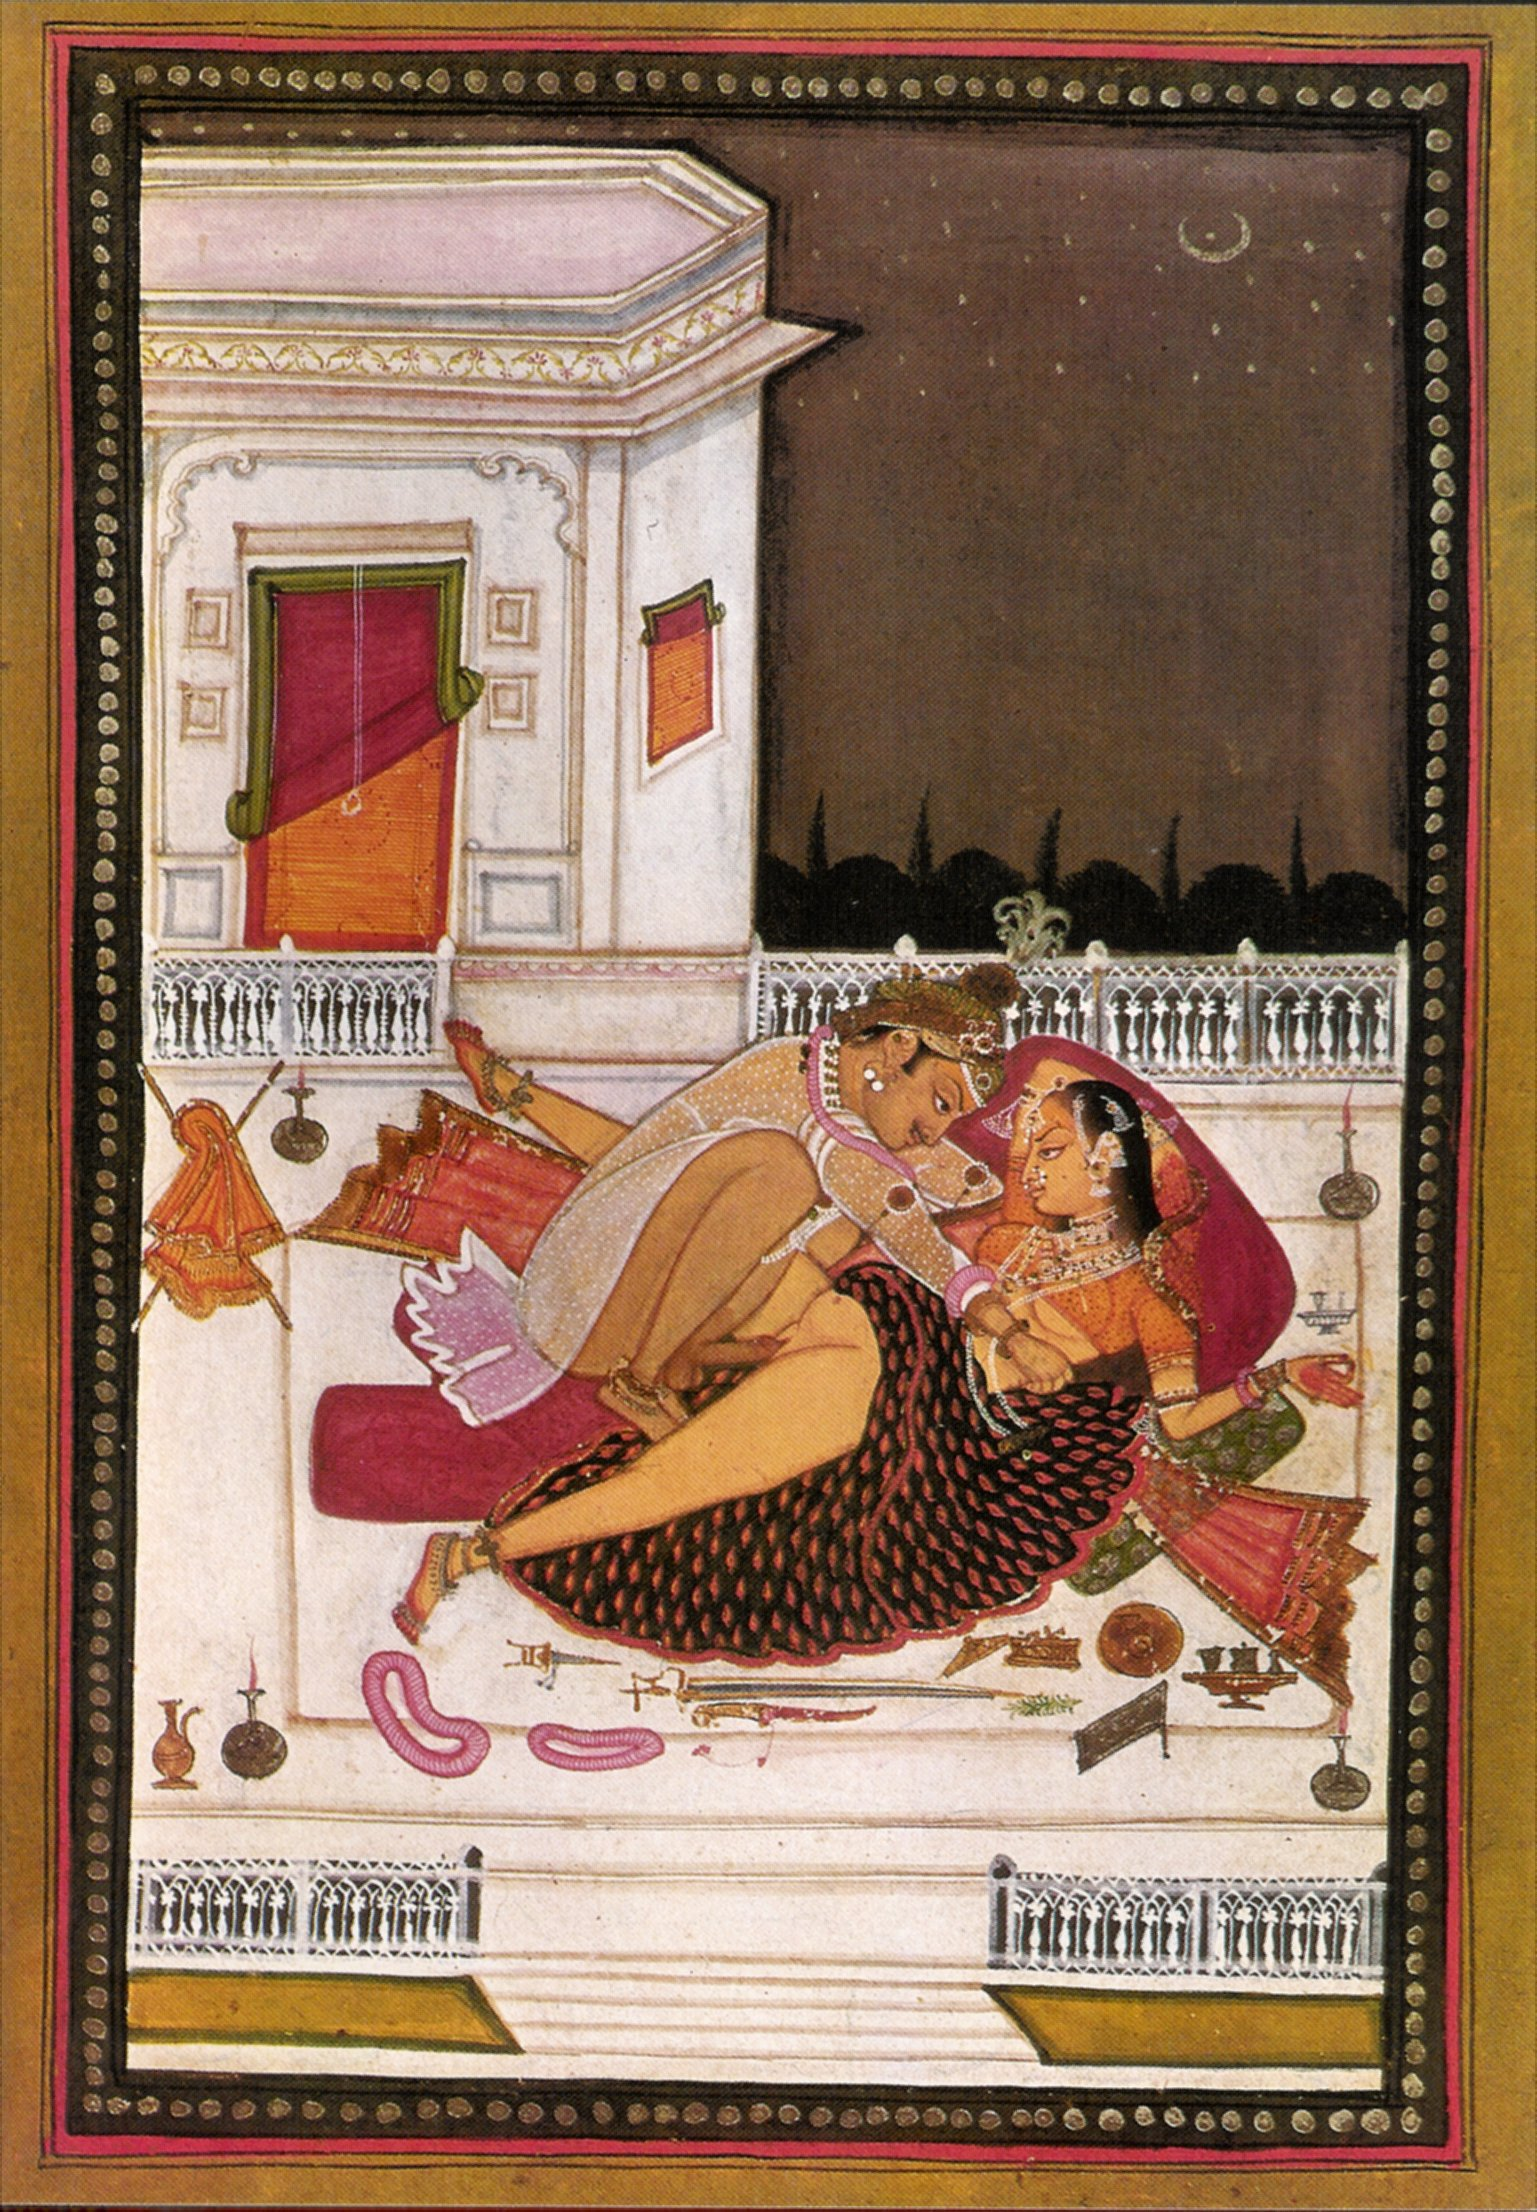 Prince and Lady Making Love on Terrace at Night - Rajput Miniature Painting  c1790